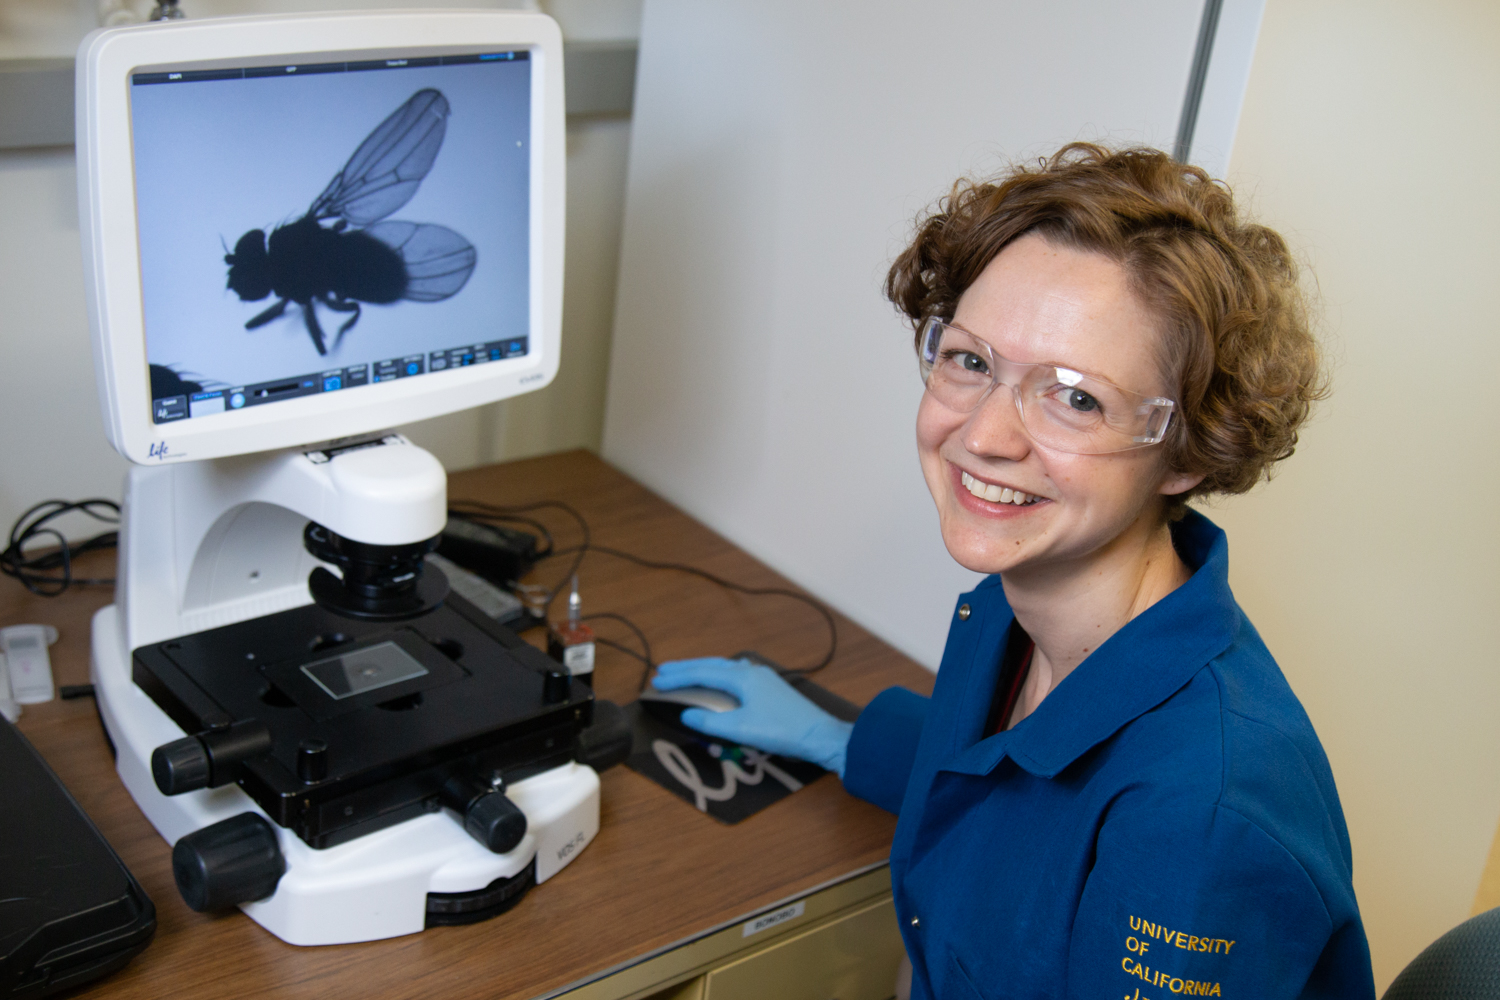 Kassandra Ori-McKenney images a fly in her lab. David Slipher/UC Davis